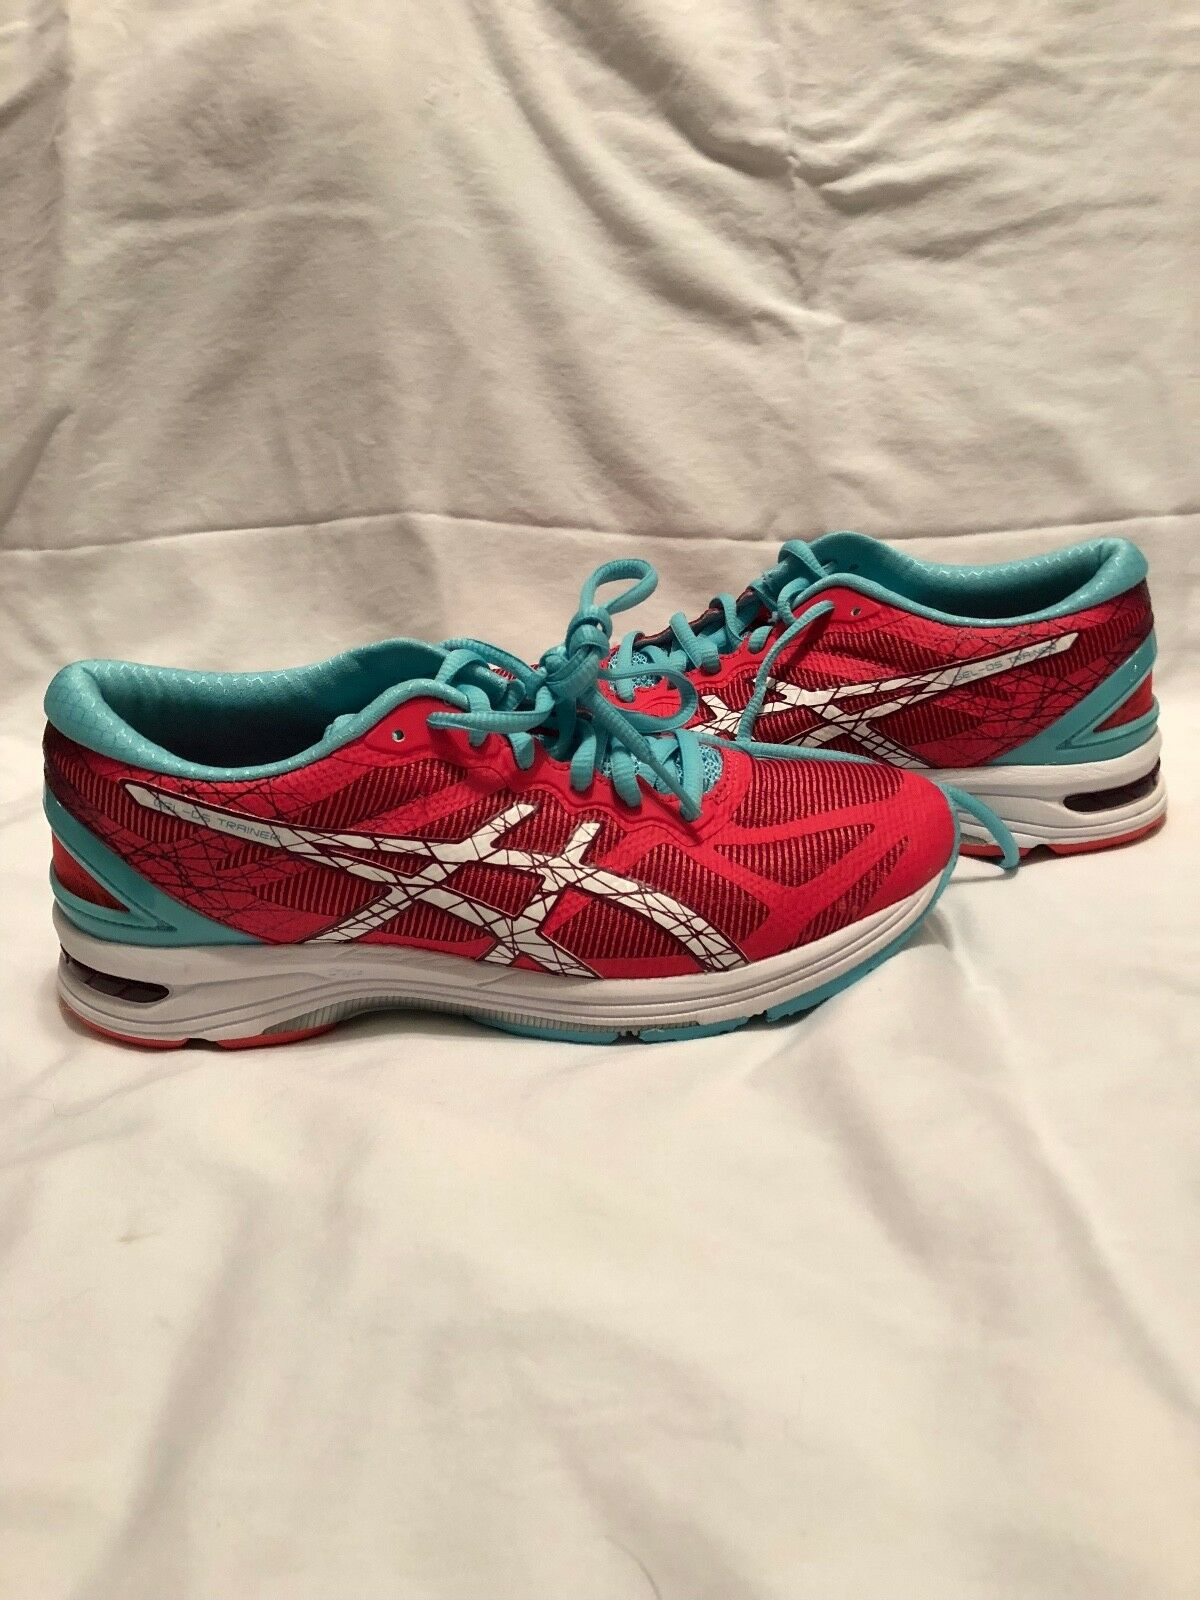 Asics Gel DS Trainer 21 Women's Running Shoes Size US 9 M (B) Red T674N